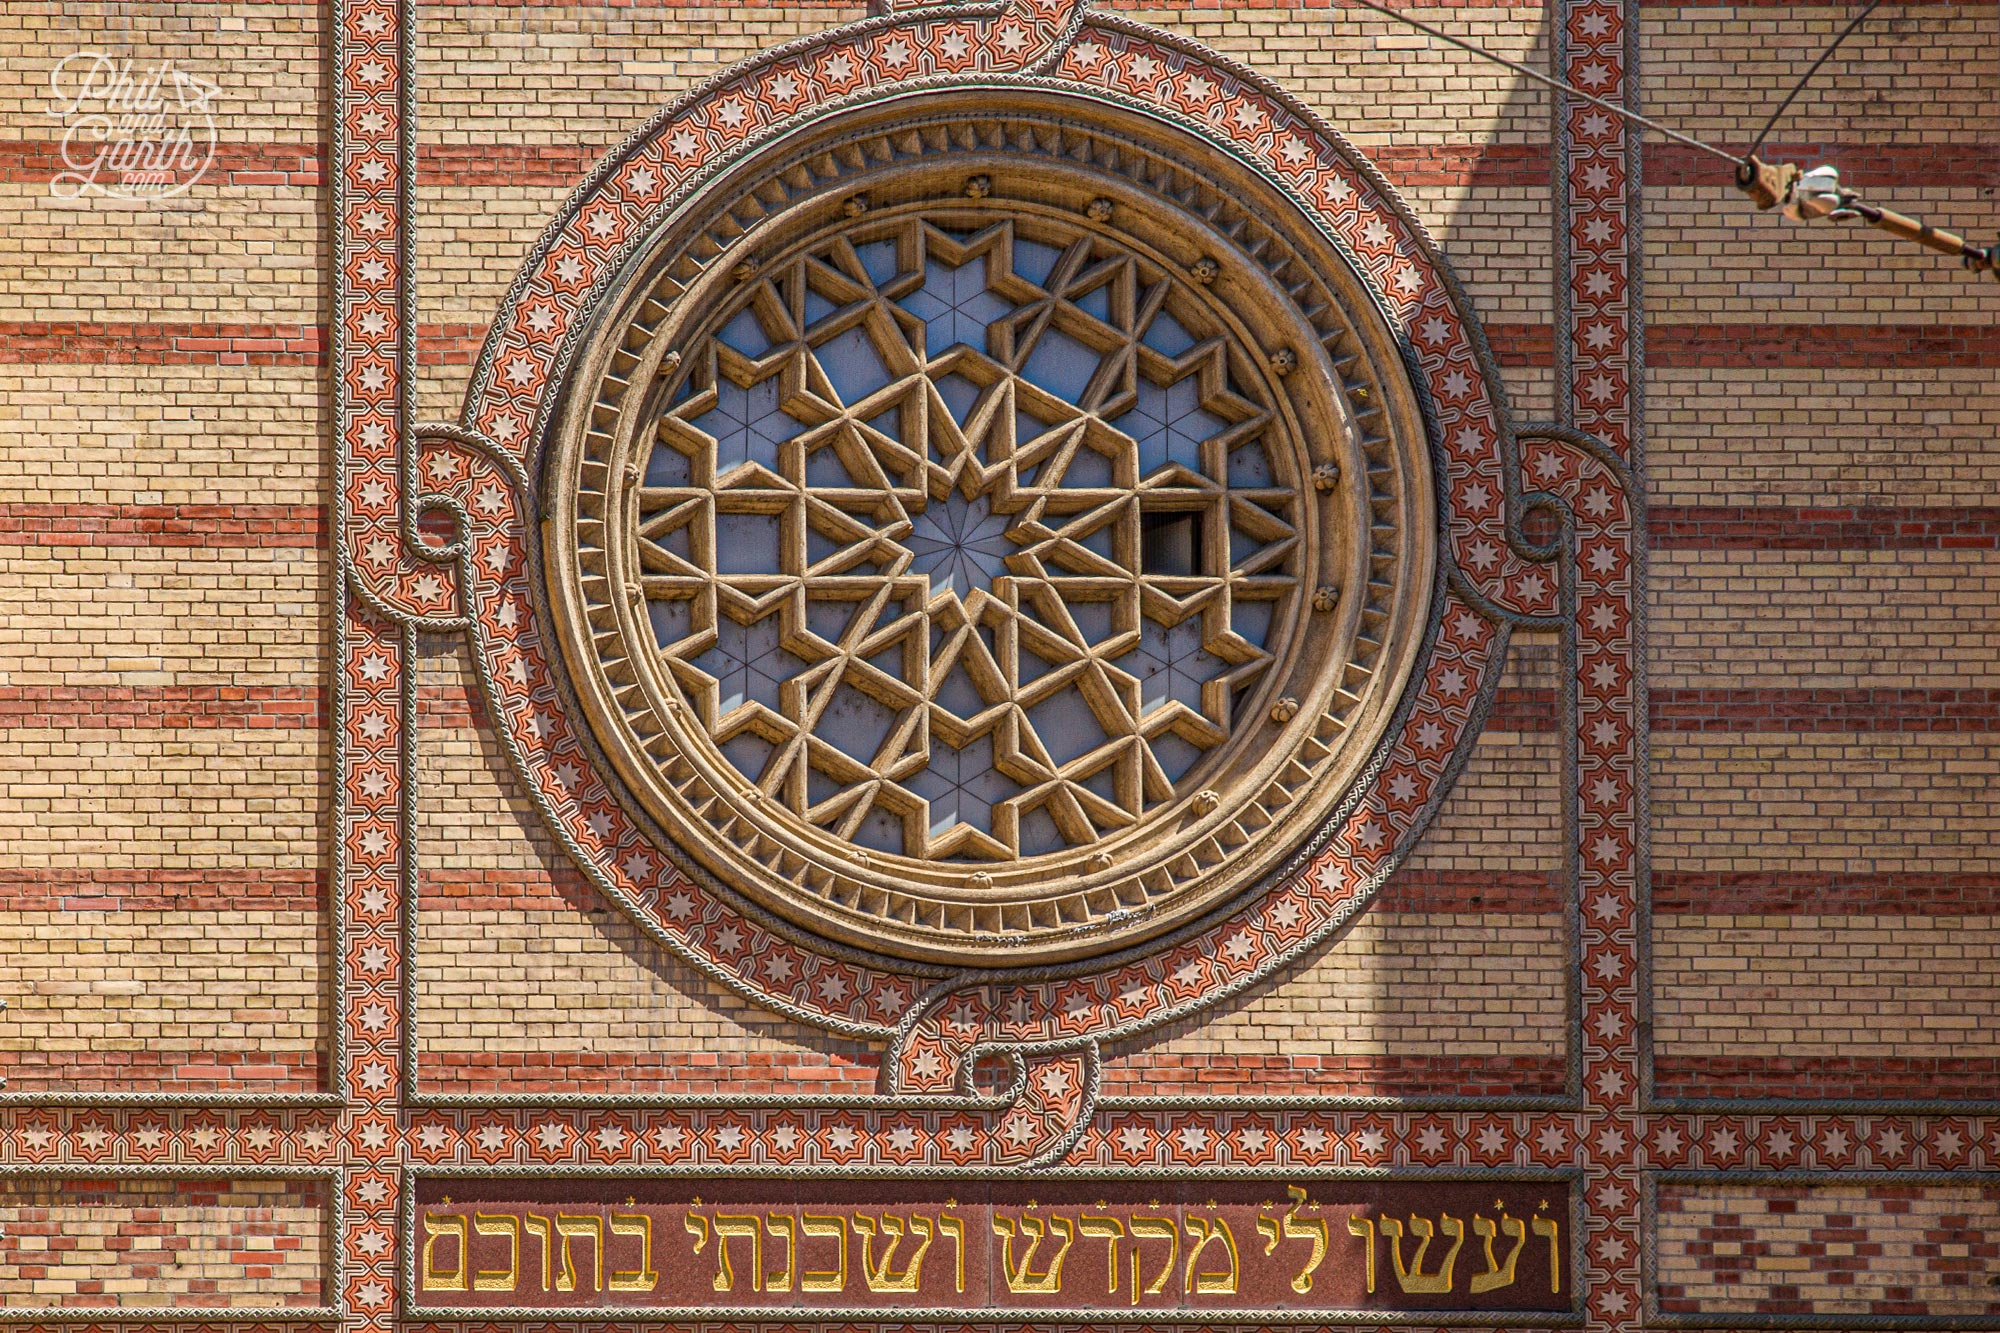 Budapest's Grand Synagogue is Europe's largest synagogue